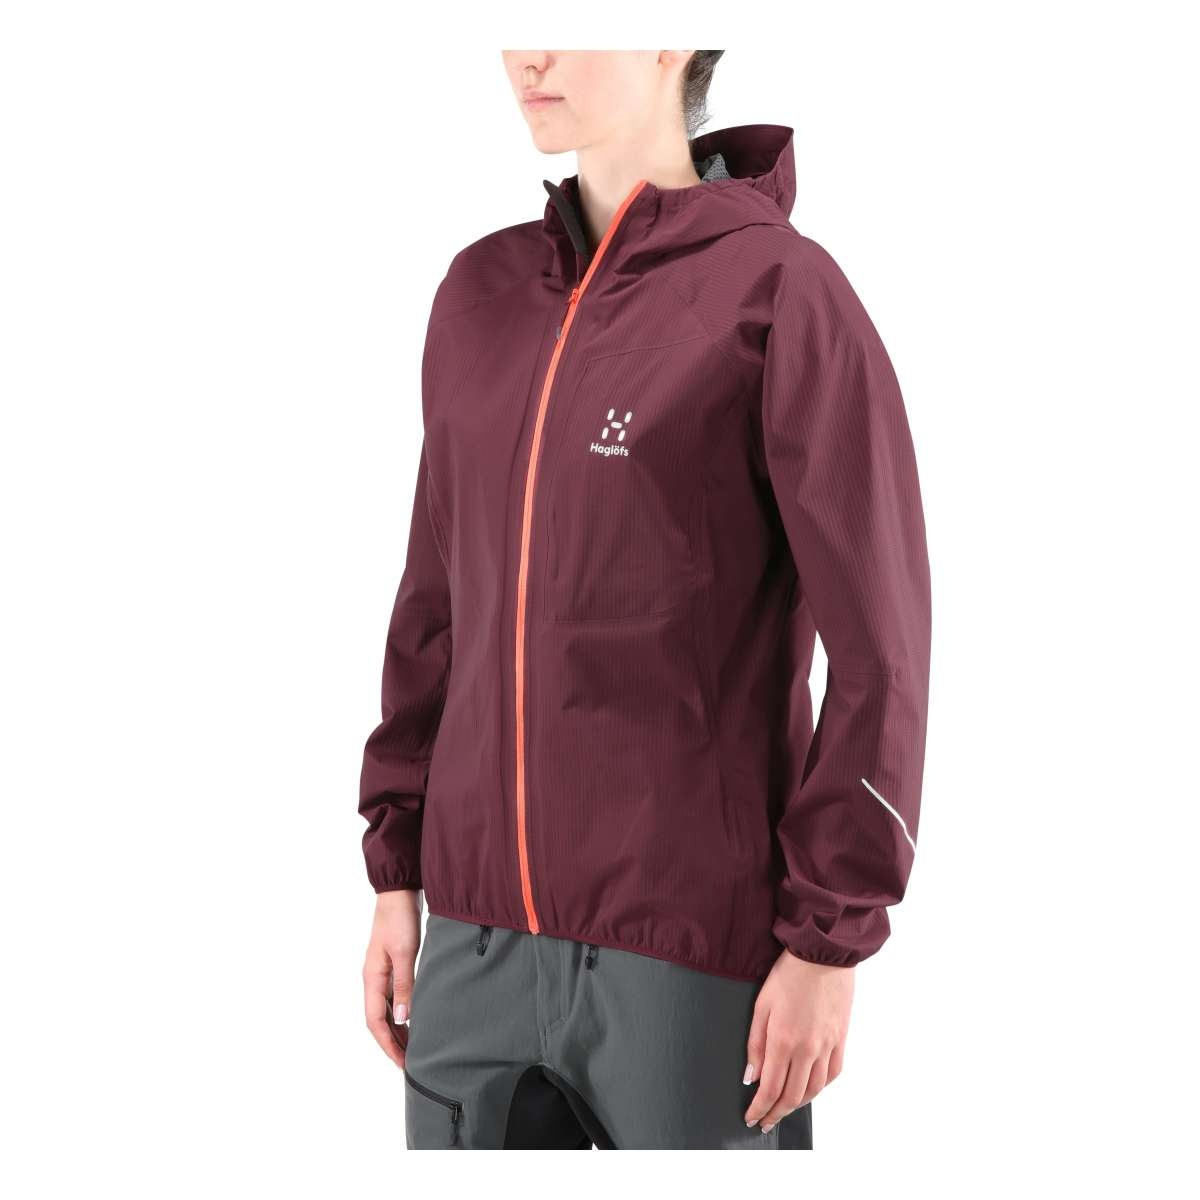 Haglöfs L.I.M Proof Jacket Women Aubergine S